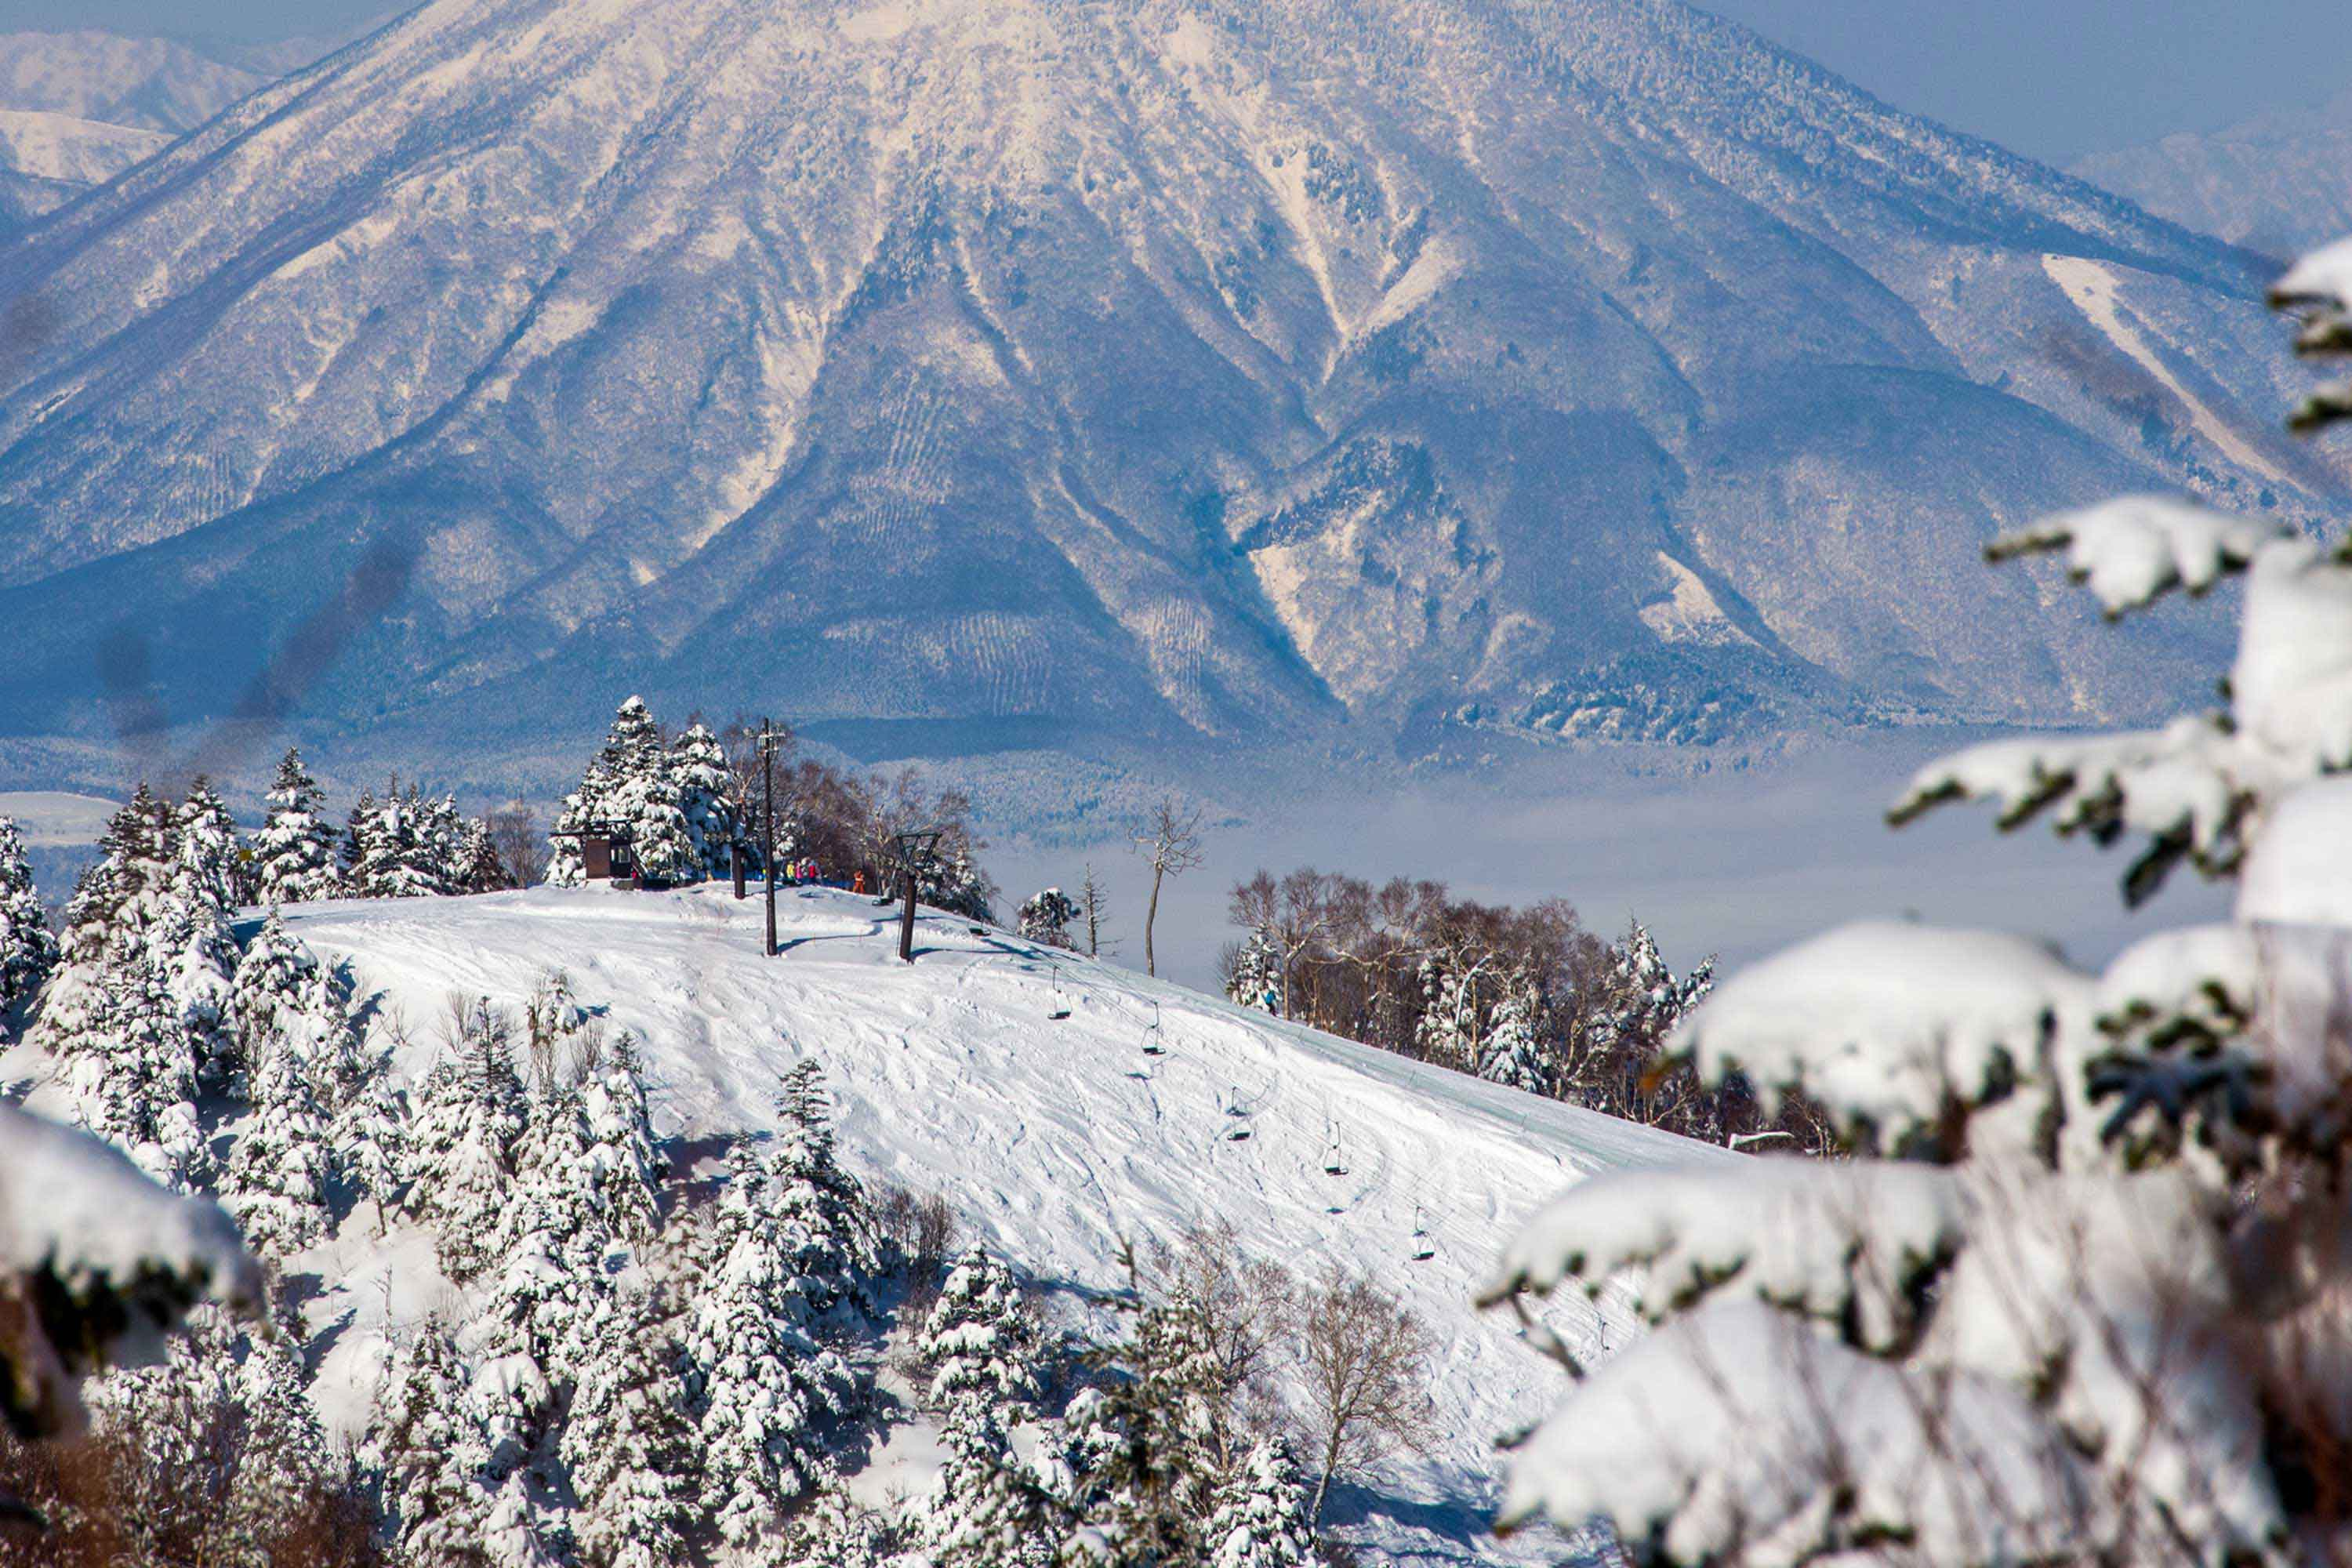 Ski Resorts in Shiga Kogen in Japan